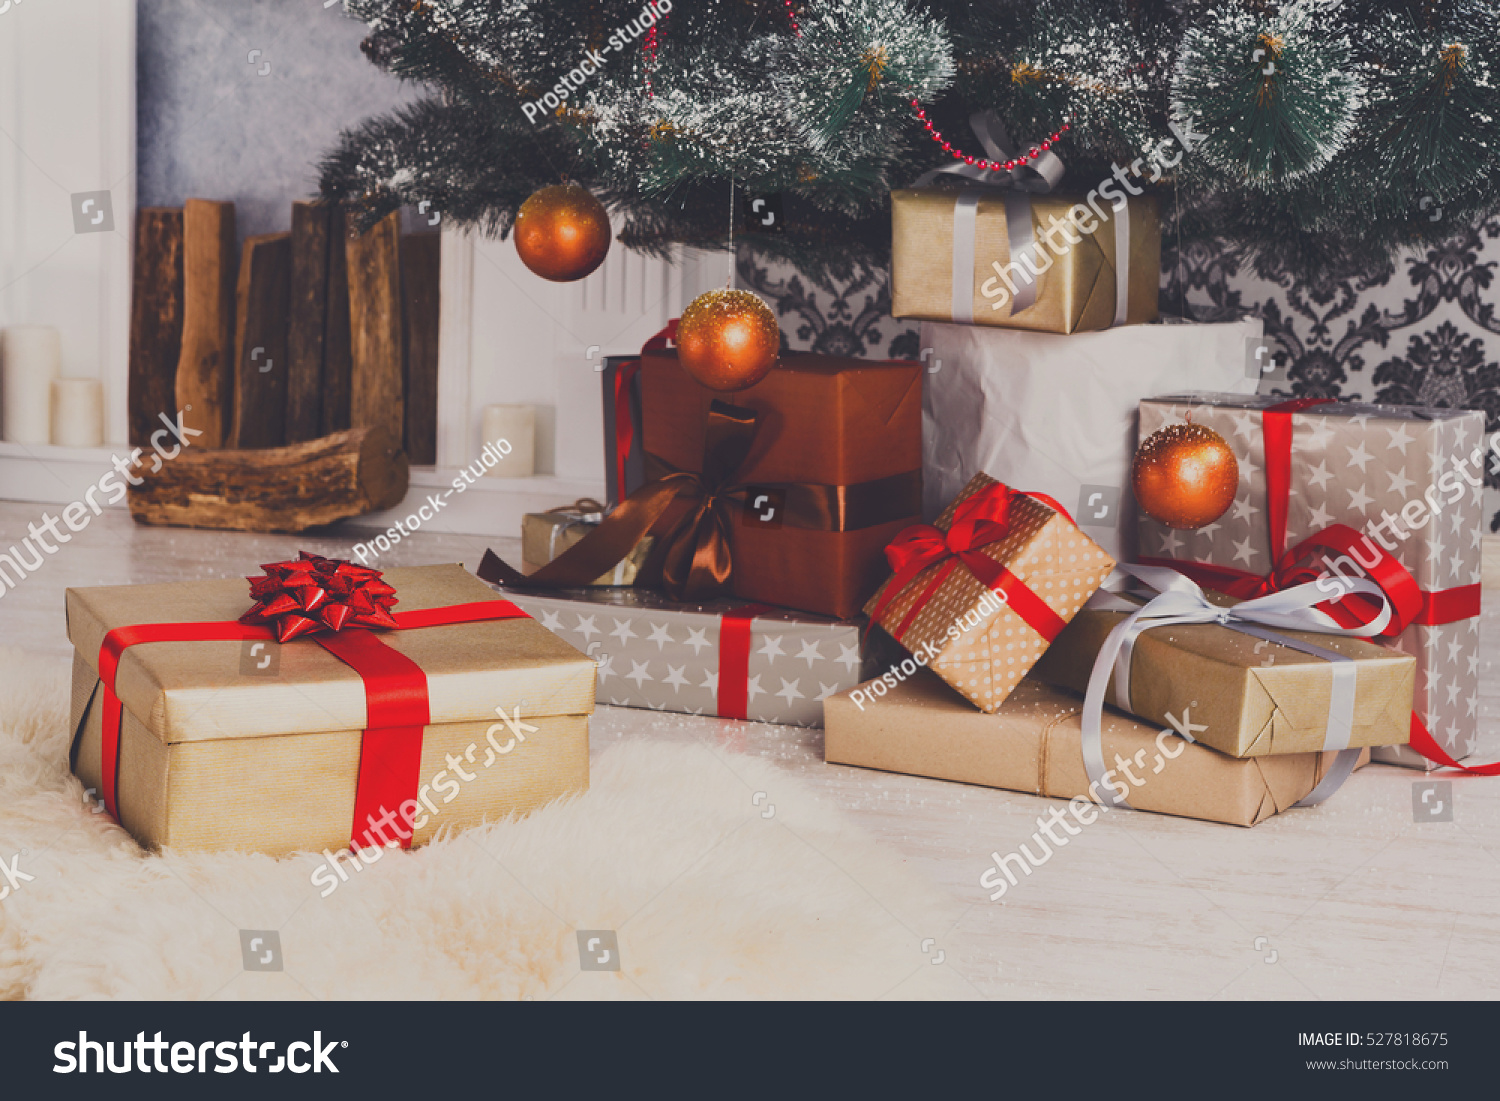 Presents And Gifts Under Christmas Tree Winter Holiday Concept